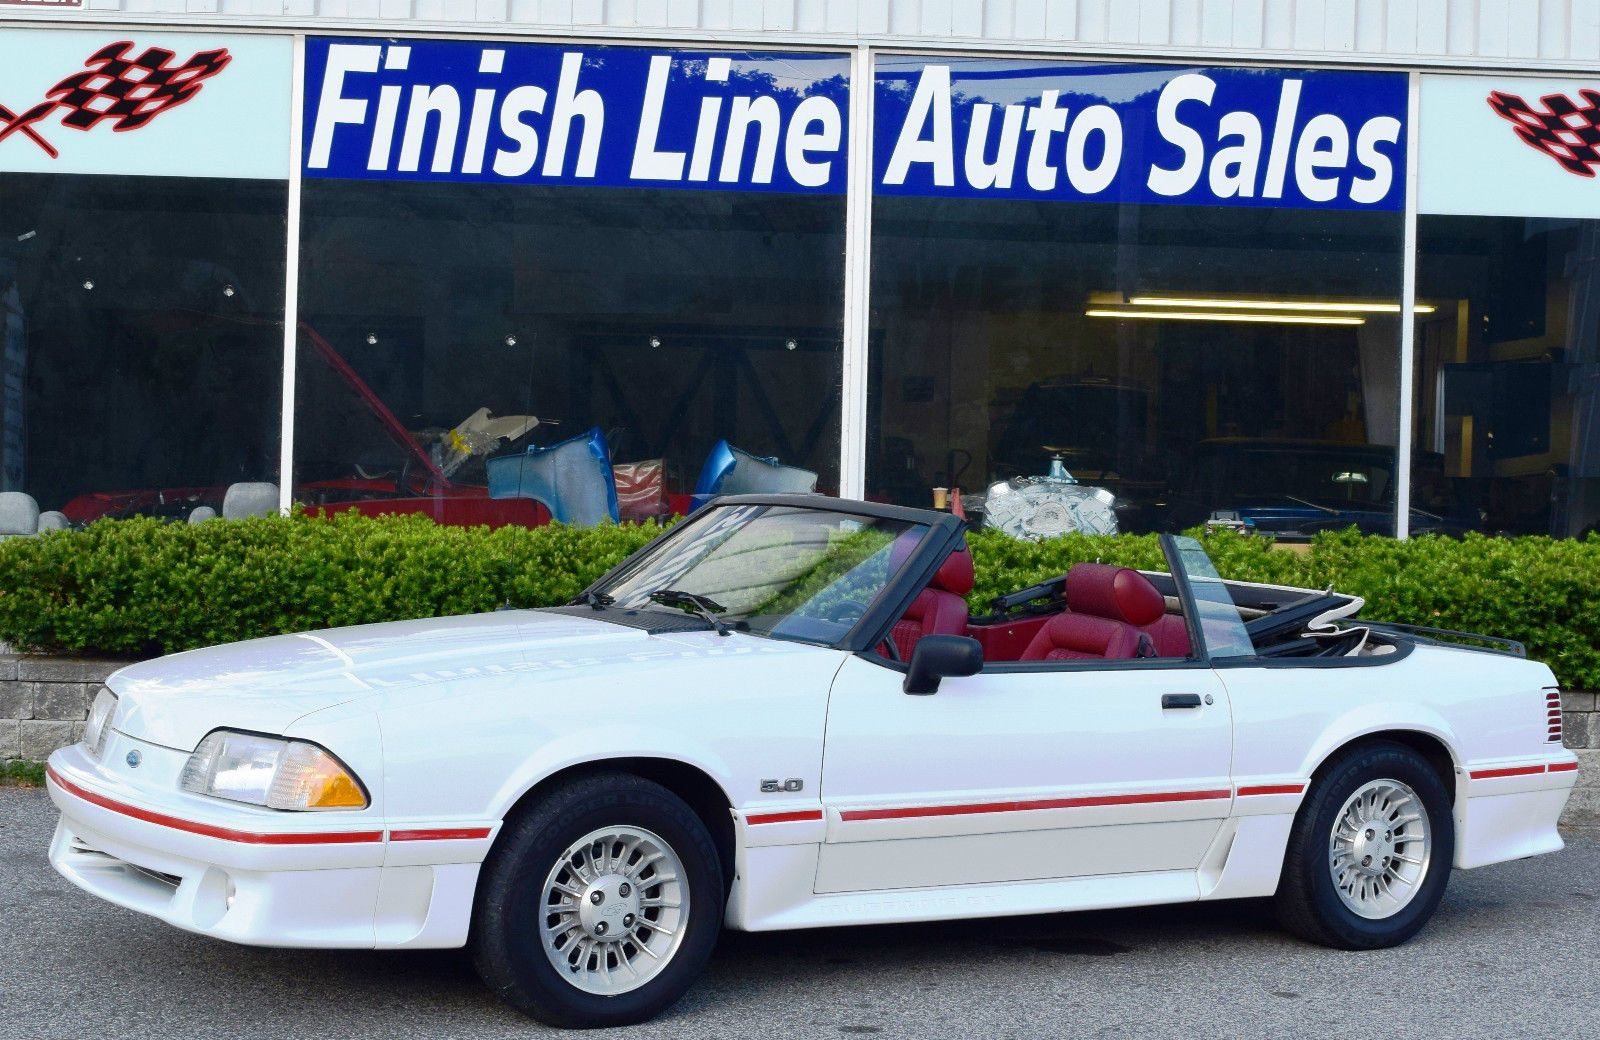 Car Brand Auctioned Ford Mustang Gt 5 0 Convertible W 38k Orig Miles 1988 Mustang Gt 5 0 Convert 38 K Orig Miles Rust Free Mustang Gt Ford Mustang Gt Mustang